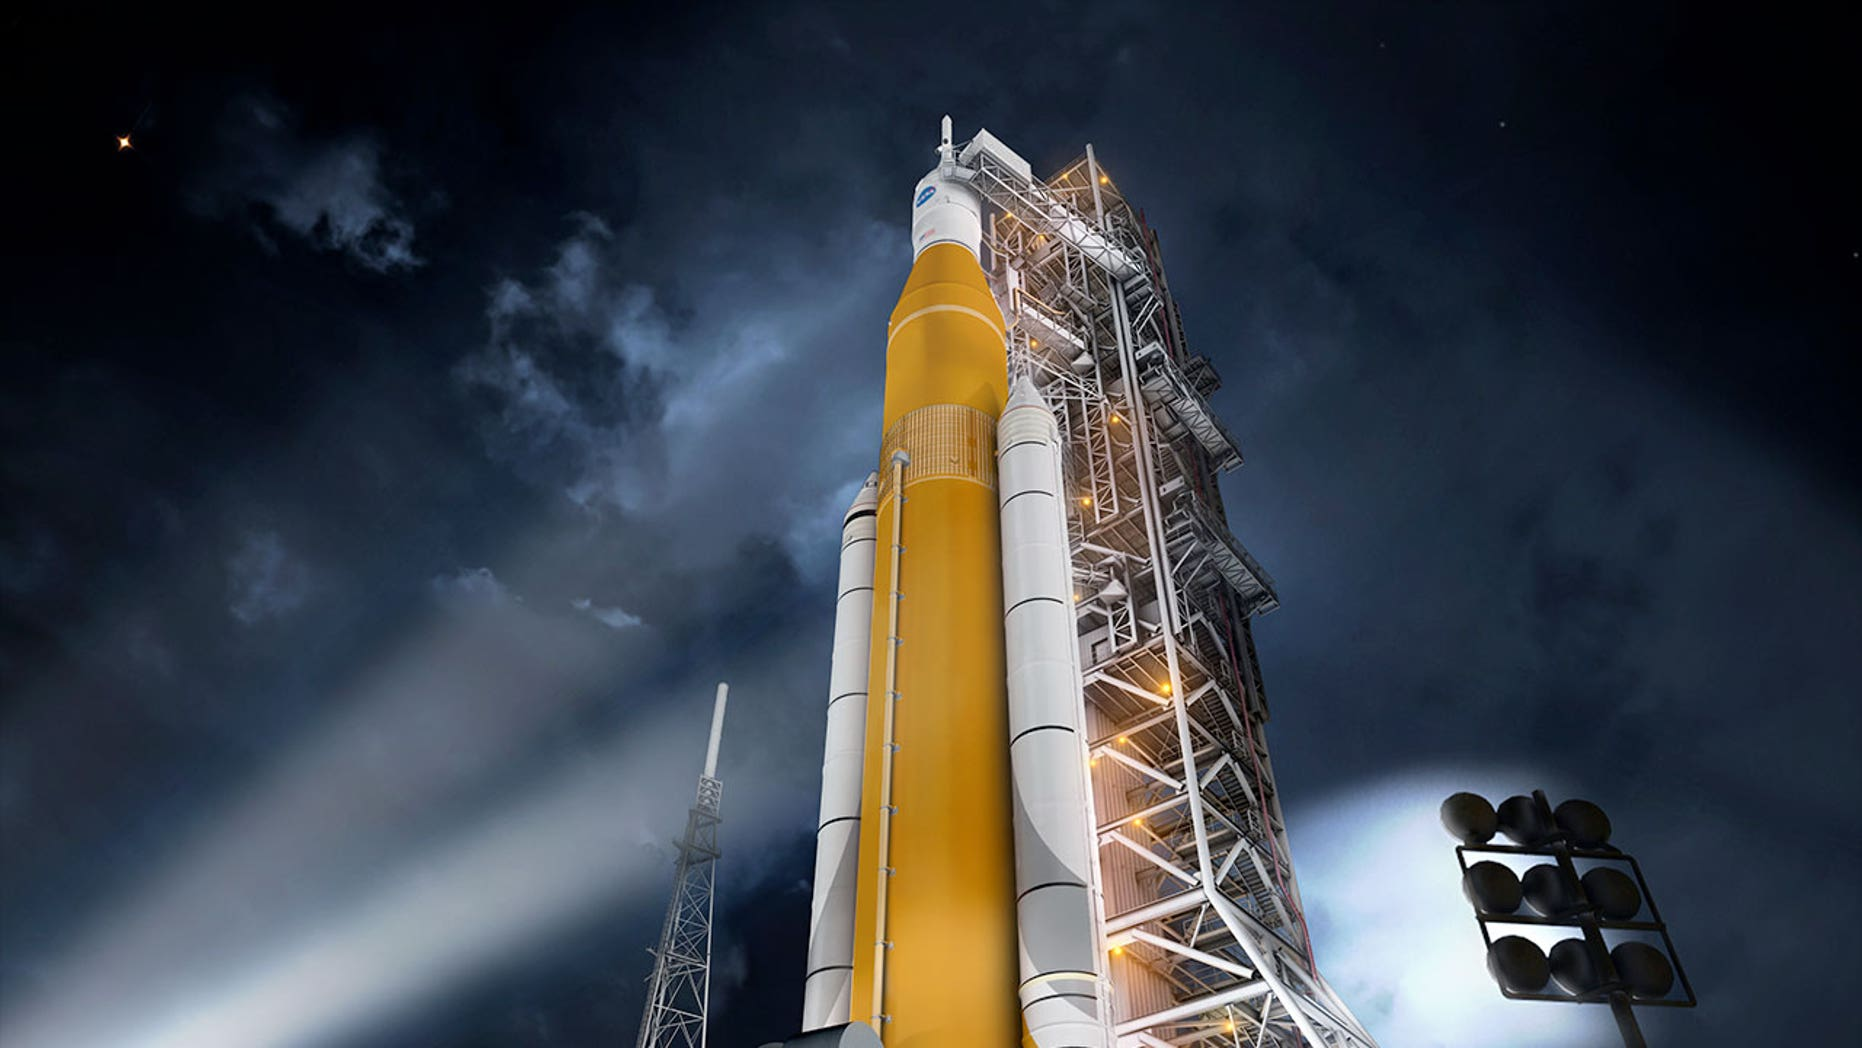 Space Launch System Design Review Image